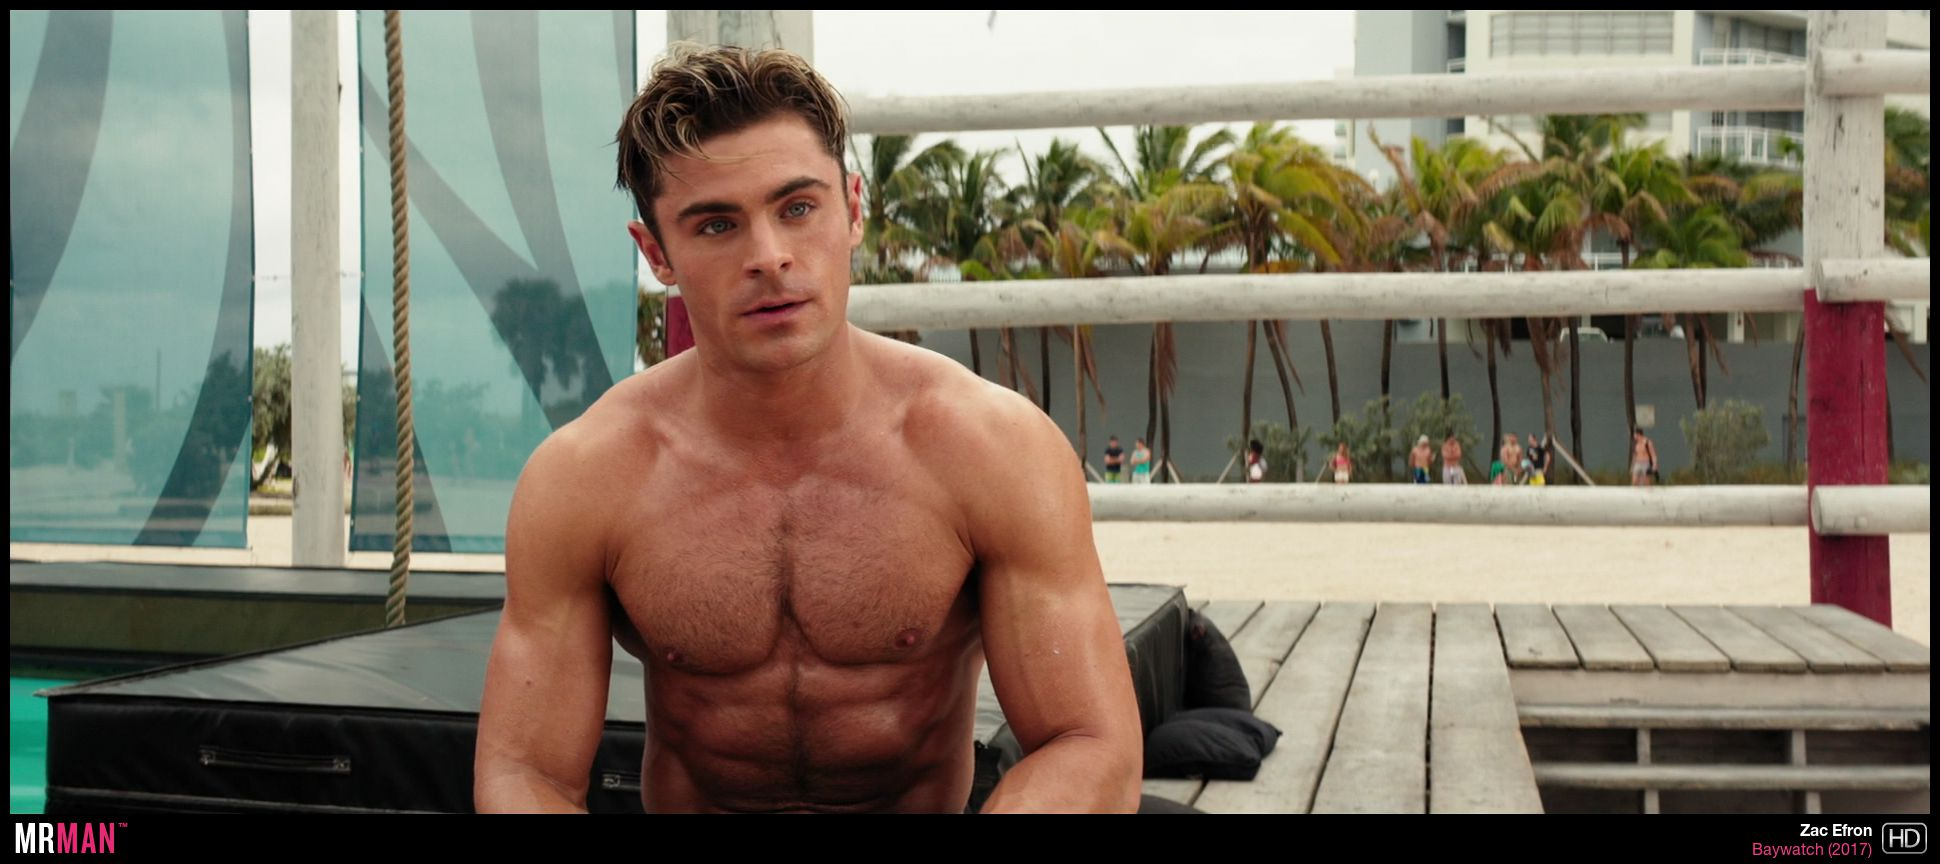 Zac Efron 32nd birthday: His hottest moments - Attitude.co.uk